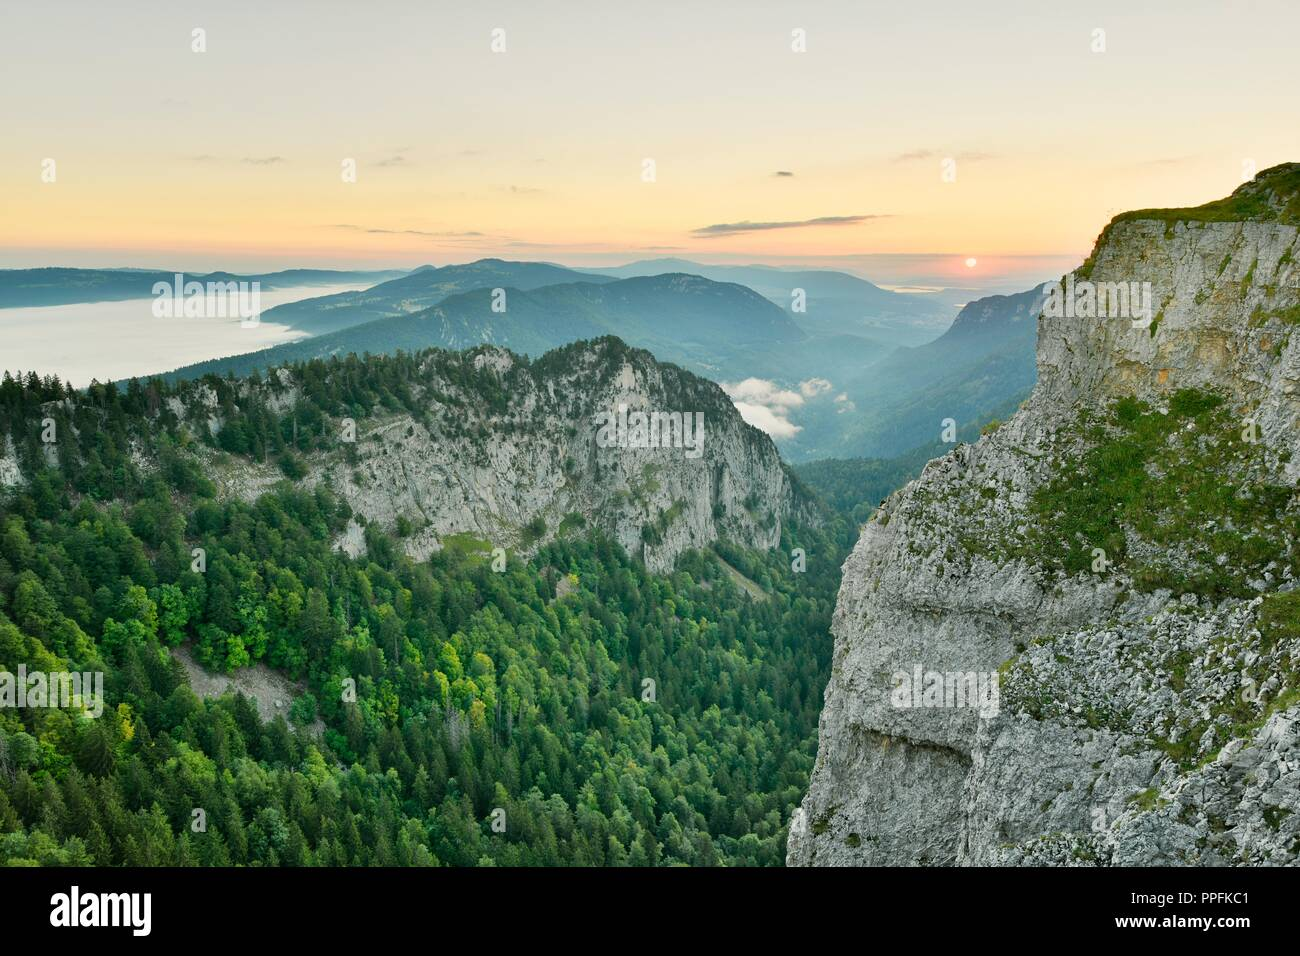 Creux du Van, rock face at sunrise, Le Soliat, canton of Jura, Switzerland - Stock Image